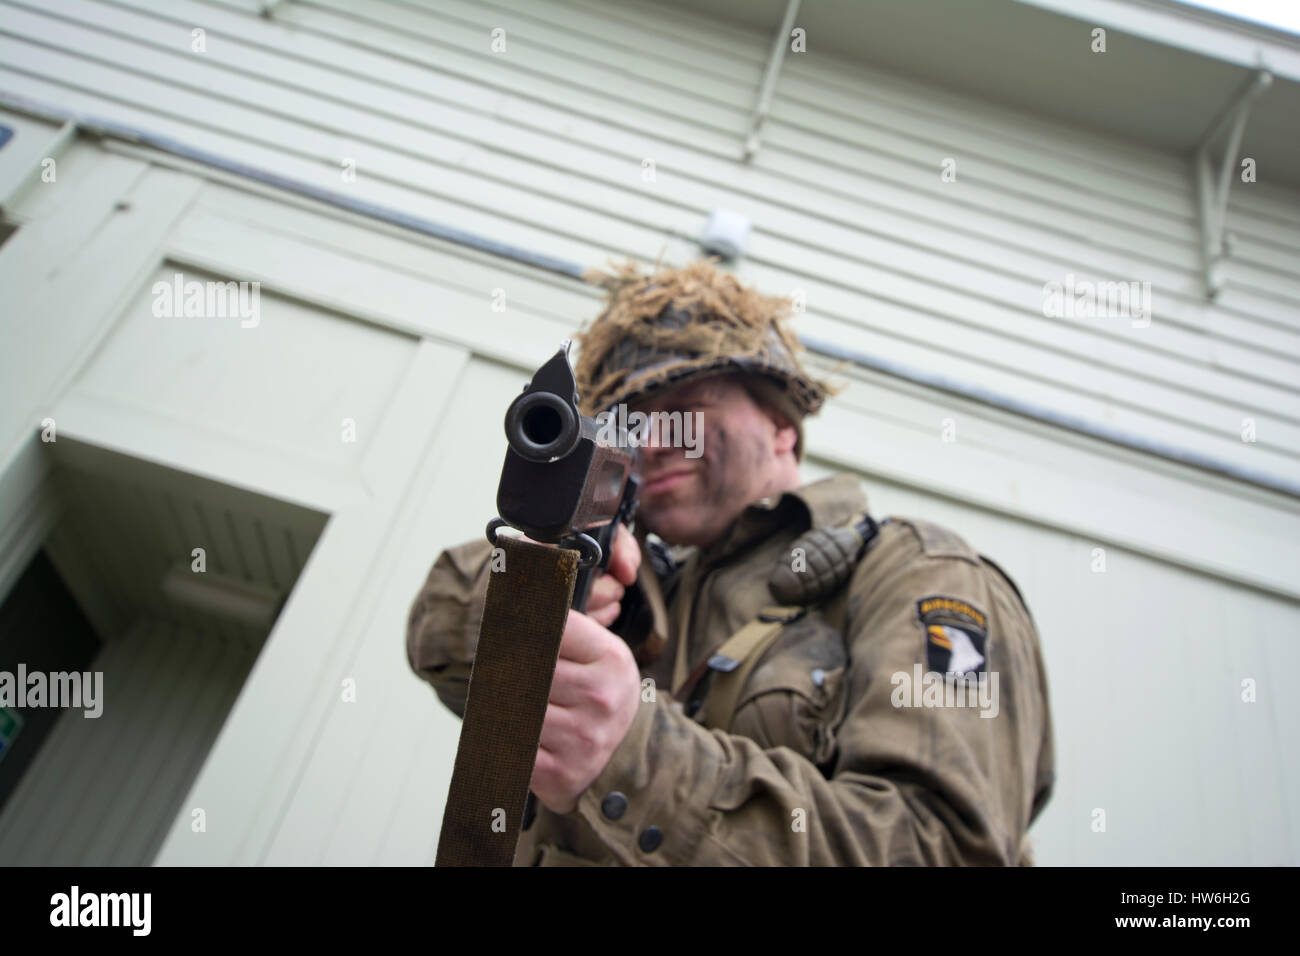 American WW2 Soldier Reinactor with tommy gun pointing at camera at Portsmouth Harbour - Stock Image